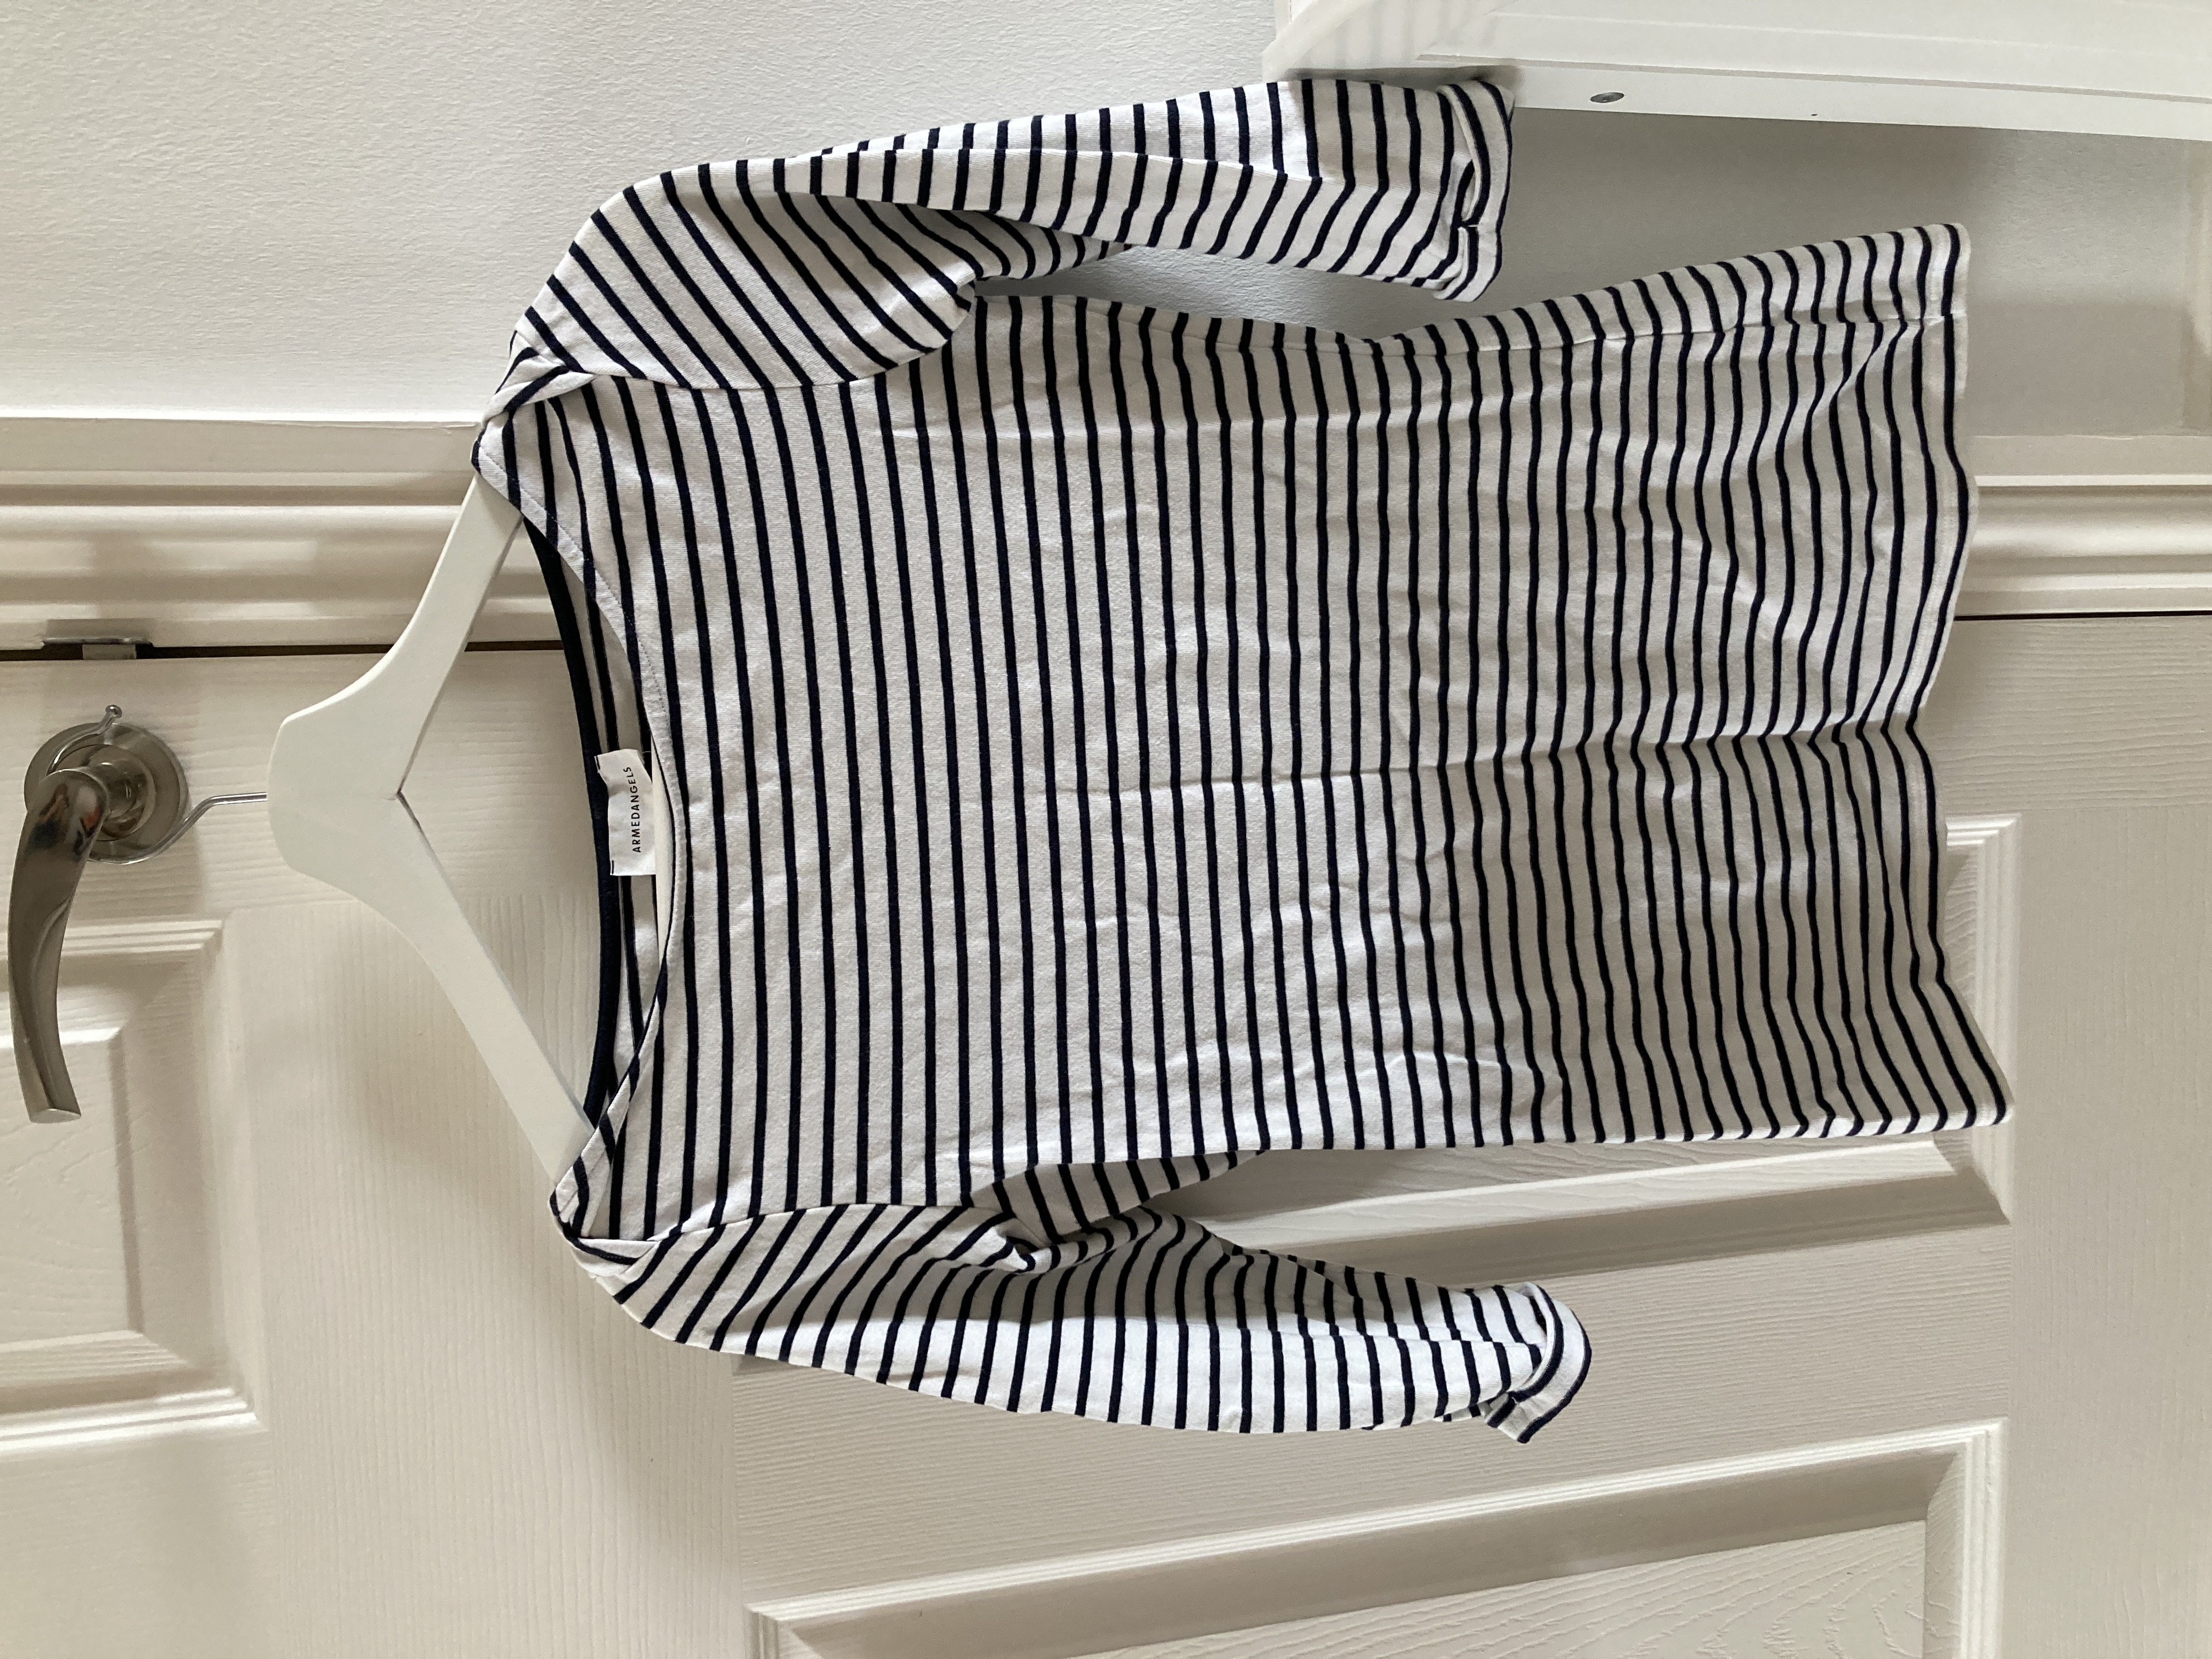 Image of Armedangels Dalenaa Stripes in Off White-Night Sky